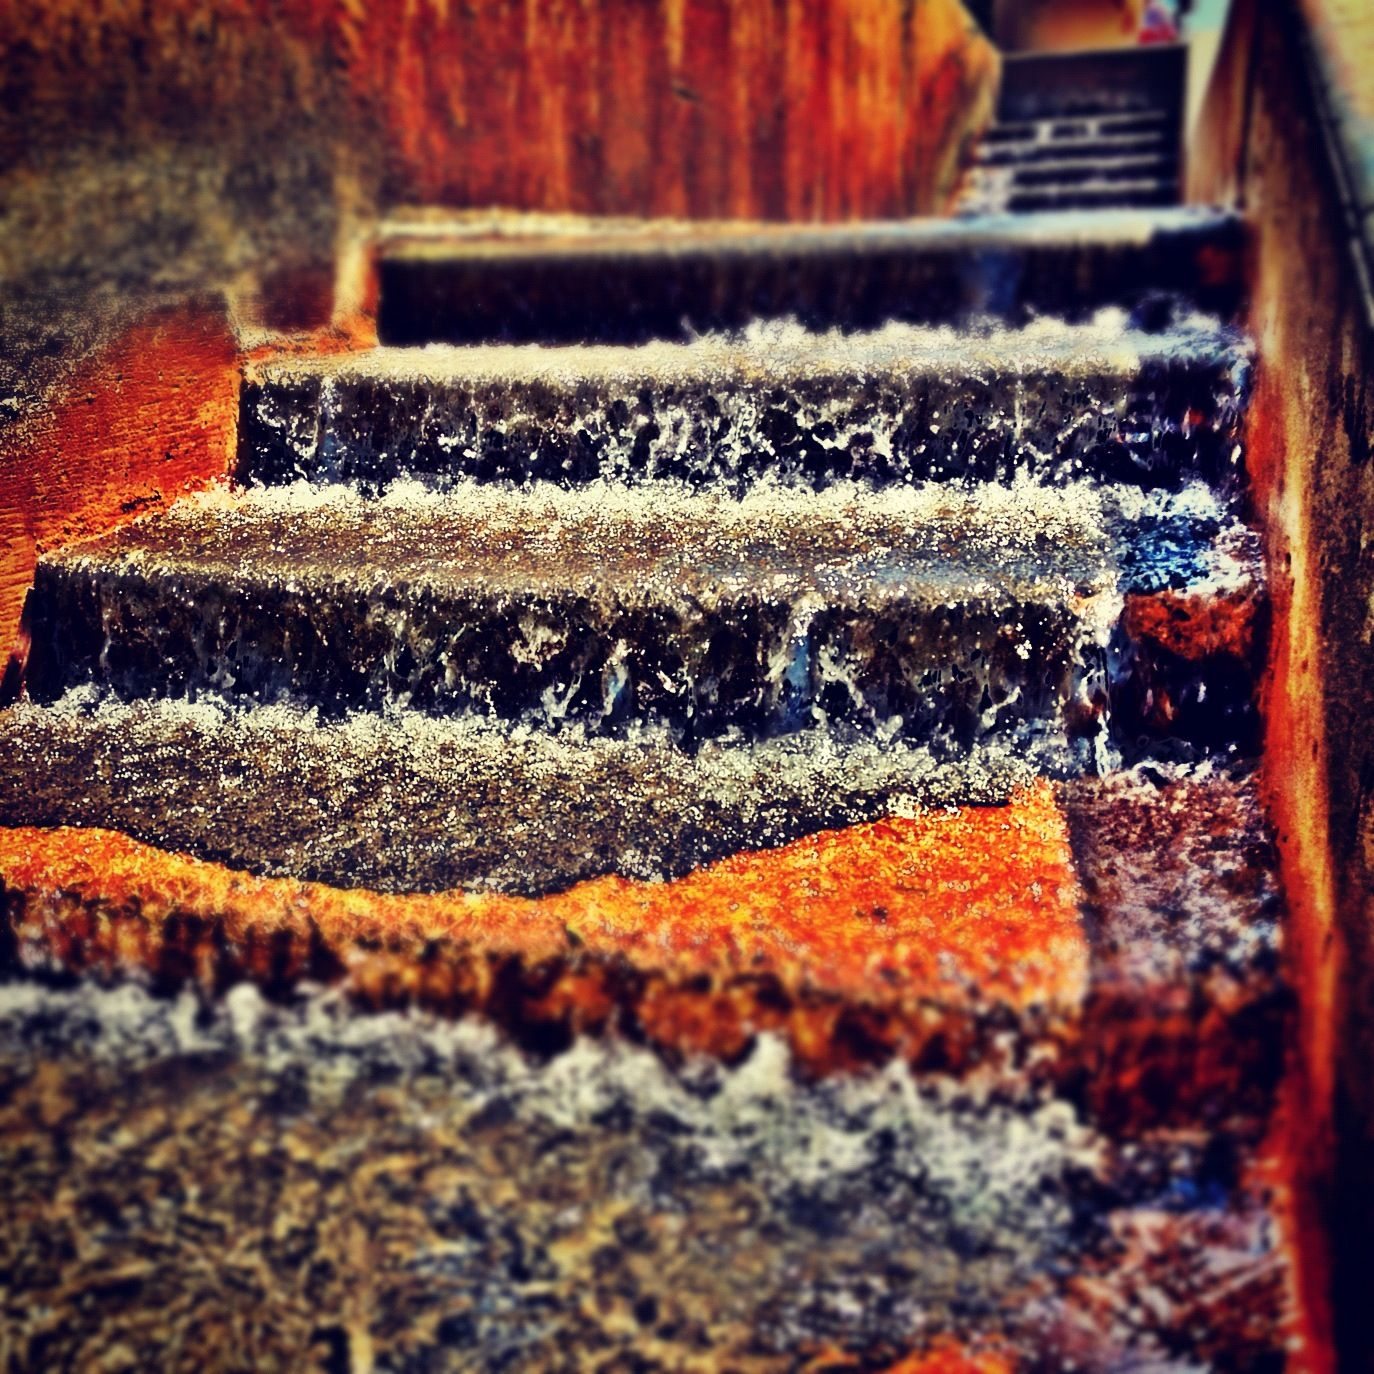 Waterfalls on steps at Balboa Park in San Diego, CA. Photo and edit by Jon Savage http://instacanv.as/savagephoto